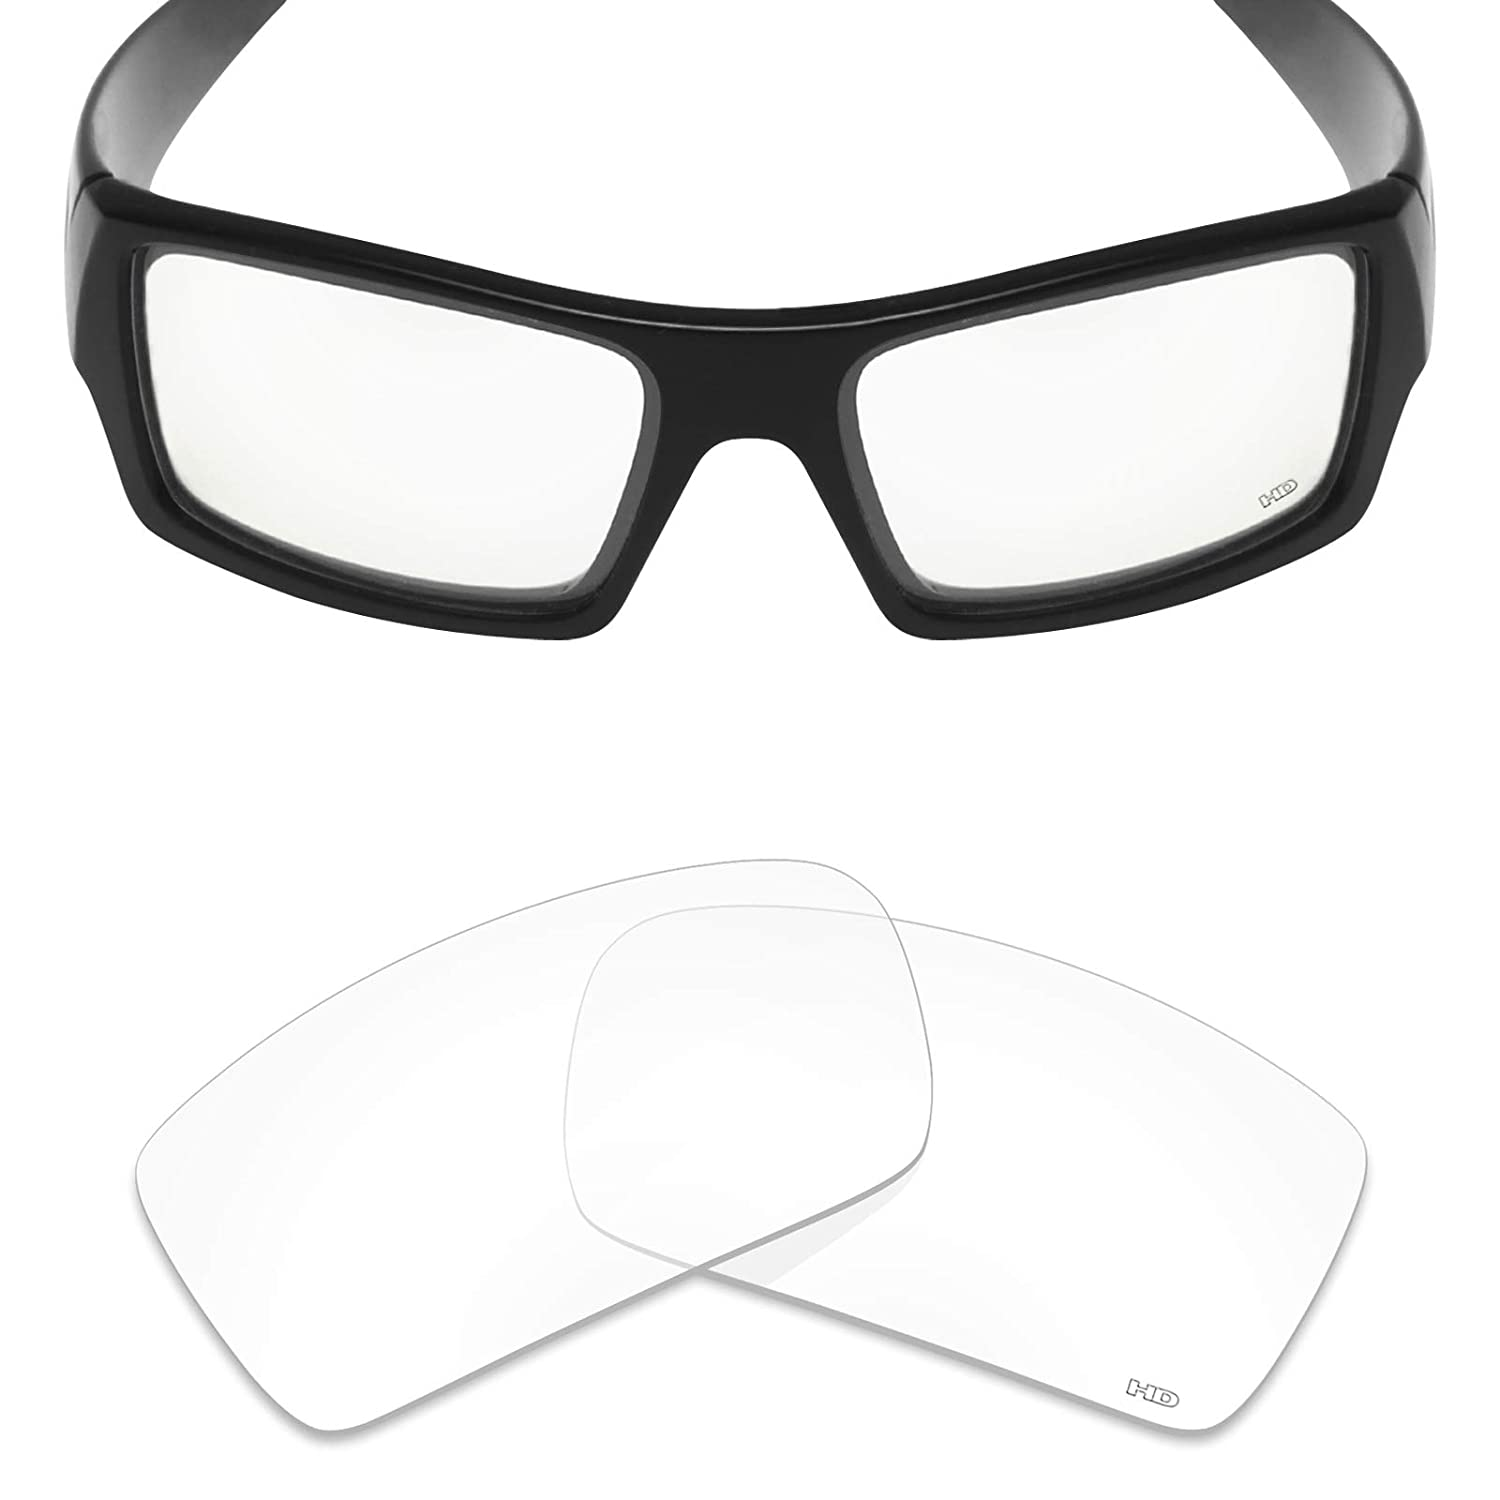 632527beba5 Amazon.com  Mryok+ Polarized Replacement Lenses for Oakley Gascan - HD  Clear  Clothing